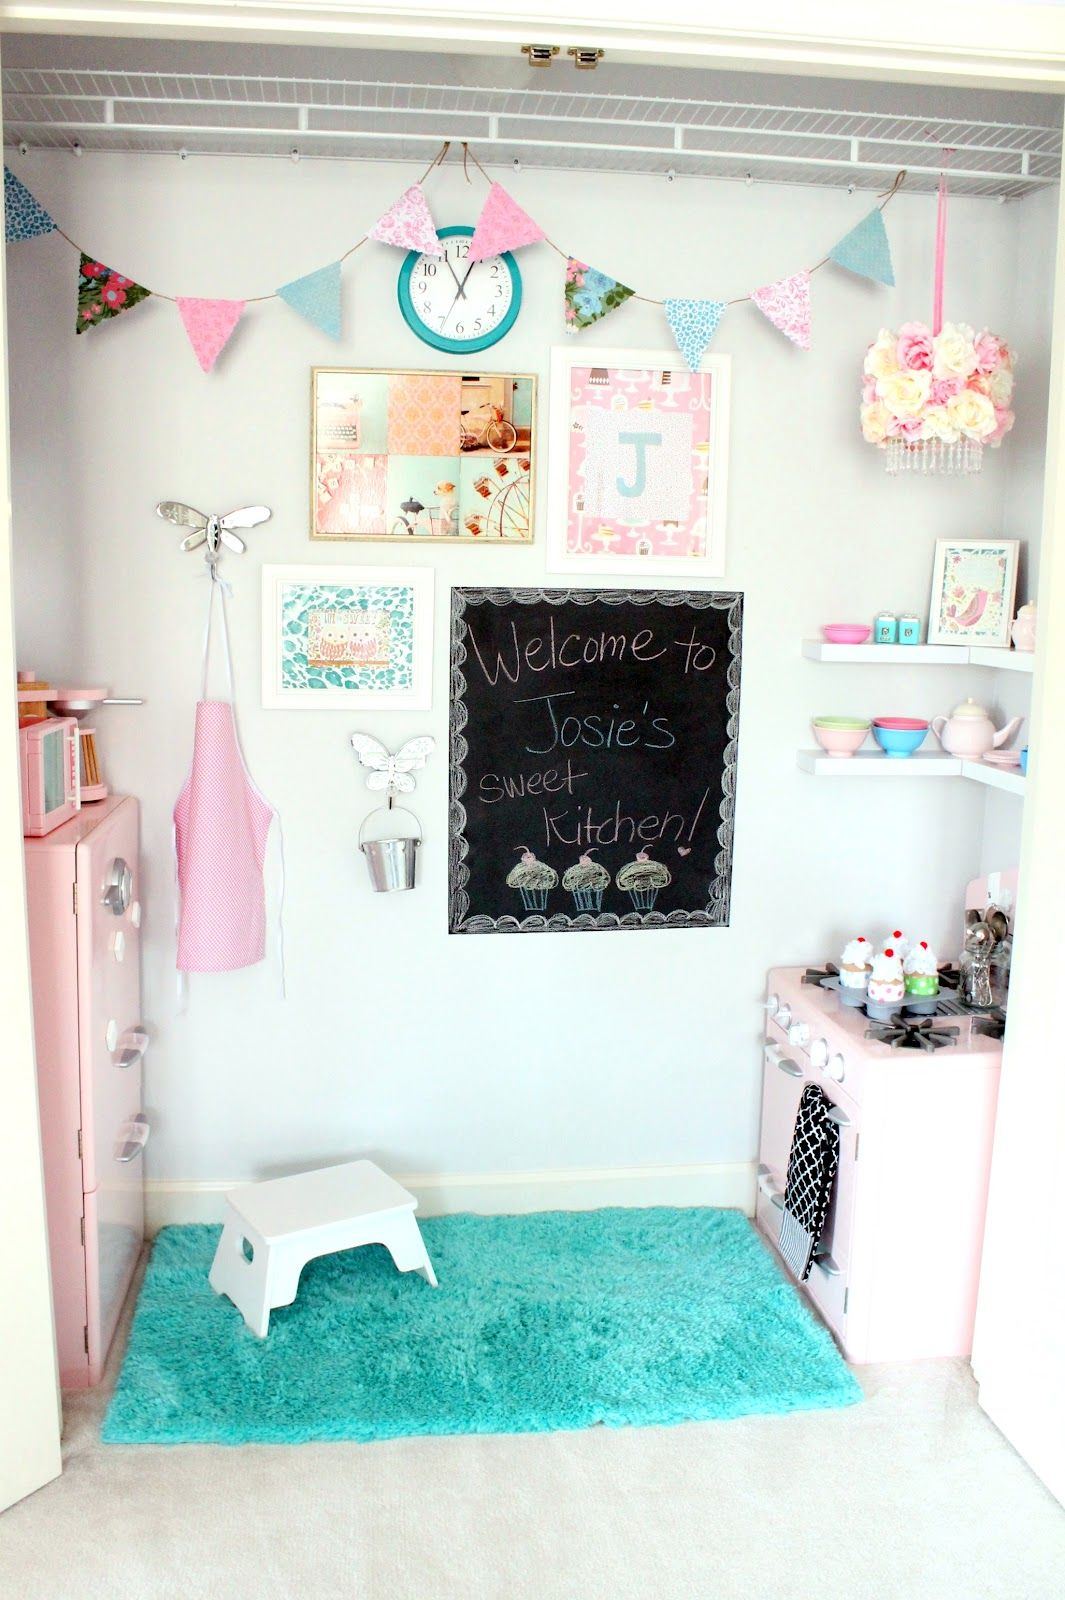 A Play Kitchen In The Closet Casinha